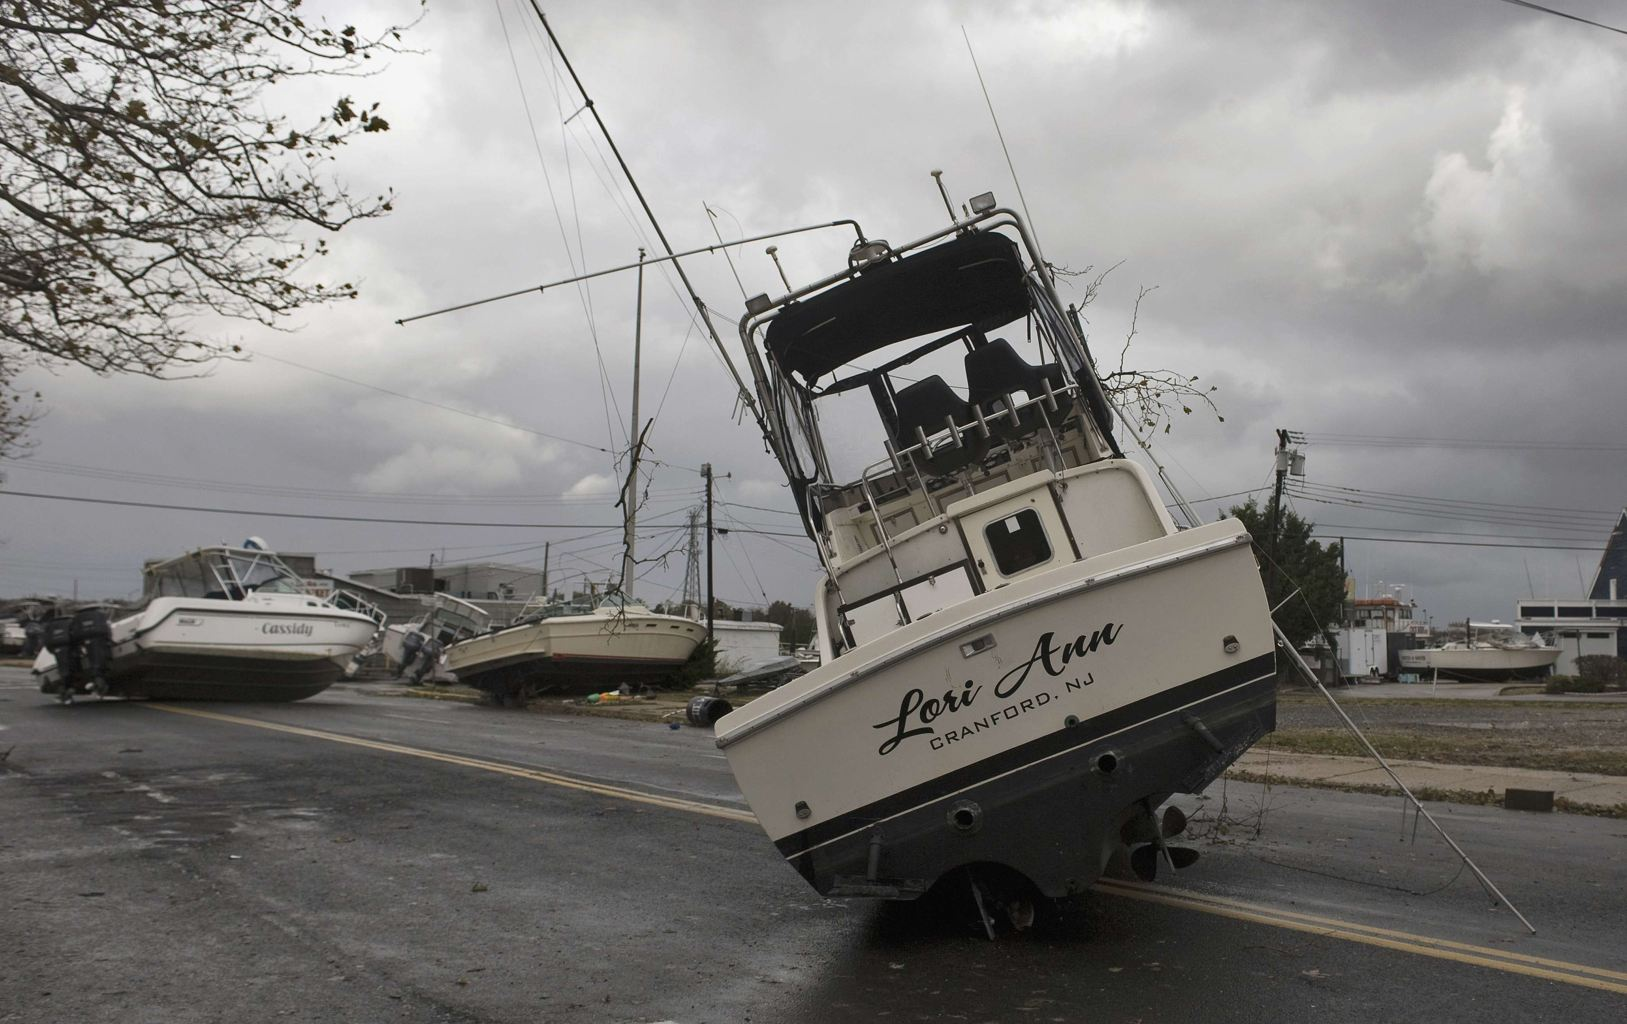 superstorm sandy Superstorm sandy devastated coastal areas of new jersey and new york, causing billions of dollars in damage, and killed dozens of people in.